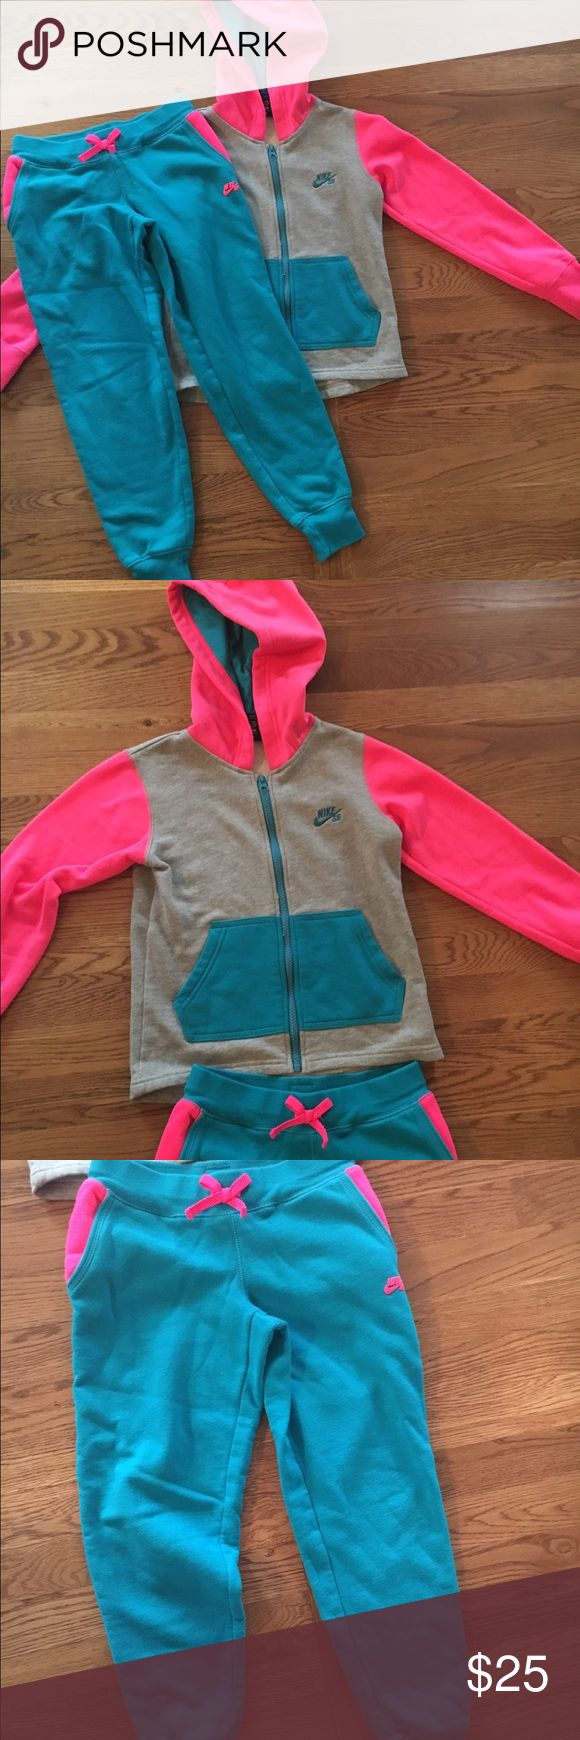 Girls Nike Sweat Suit Plush cotton sweatsuit from Nike purchased at Nordstrom. Excellent used condition. Size 8/10. Funny and comfy! Nike Matching Sets